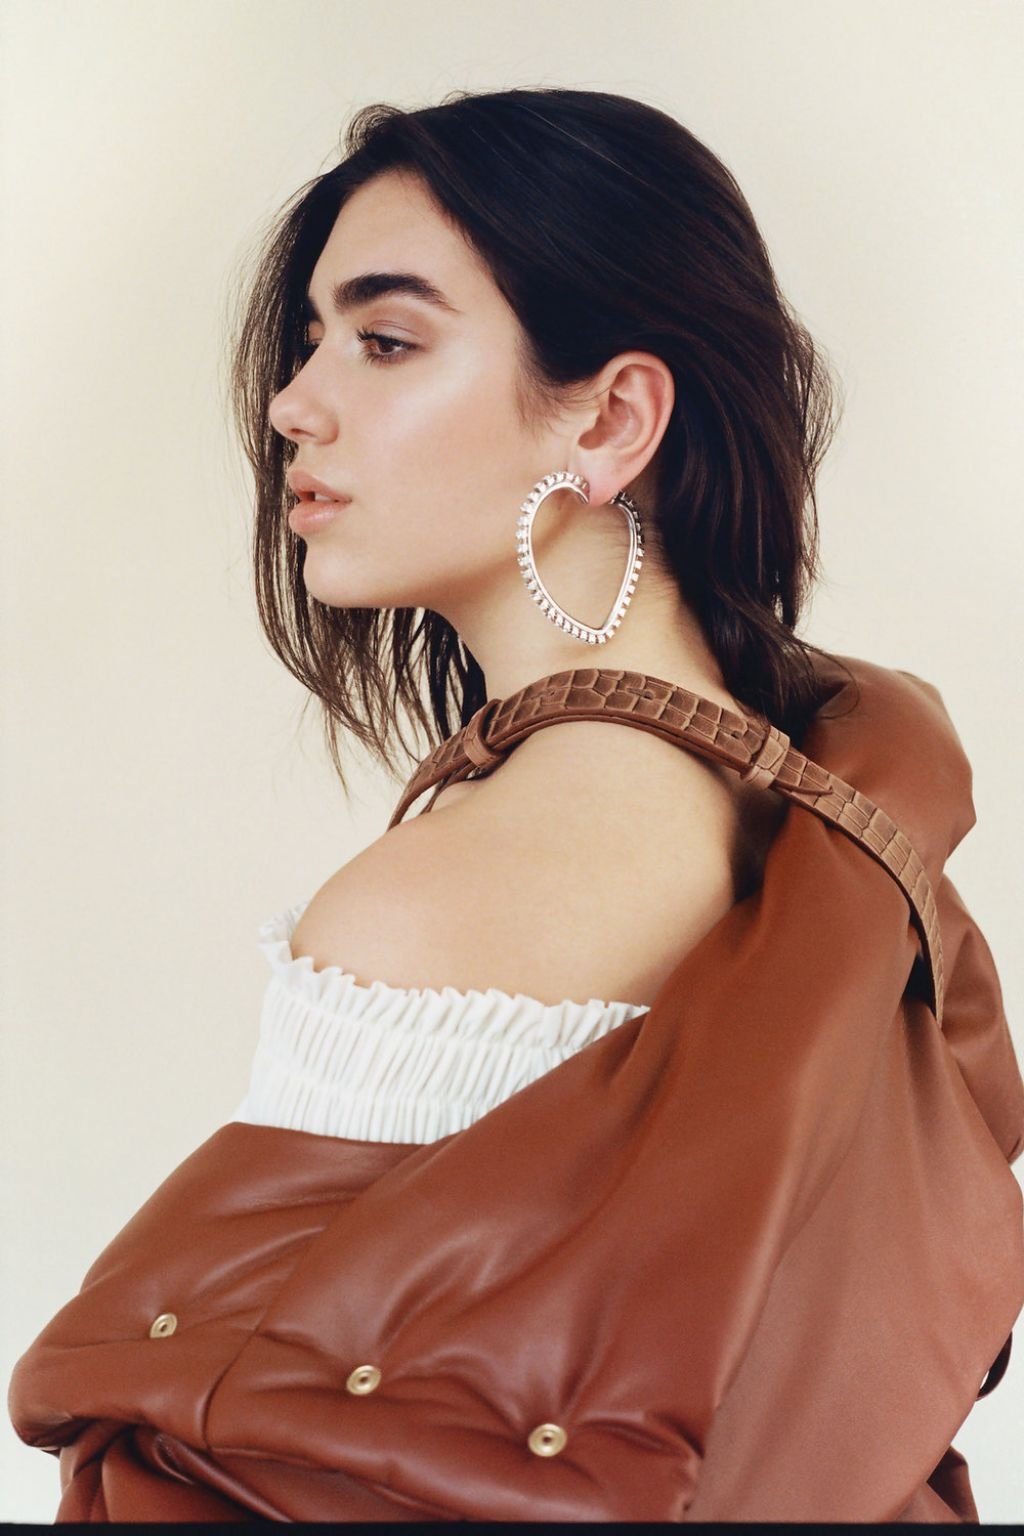 dua lipa - photo #15